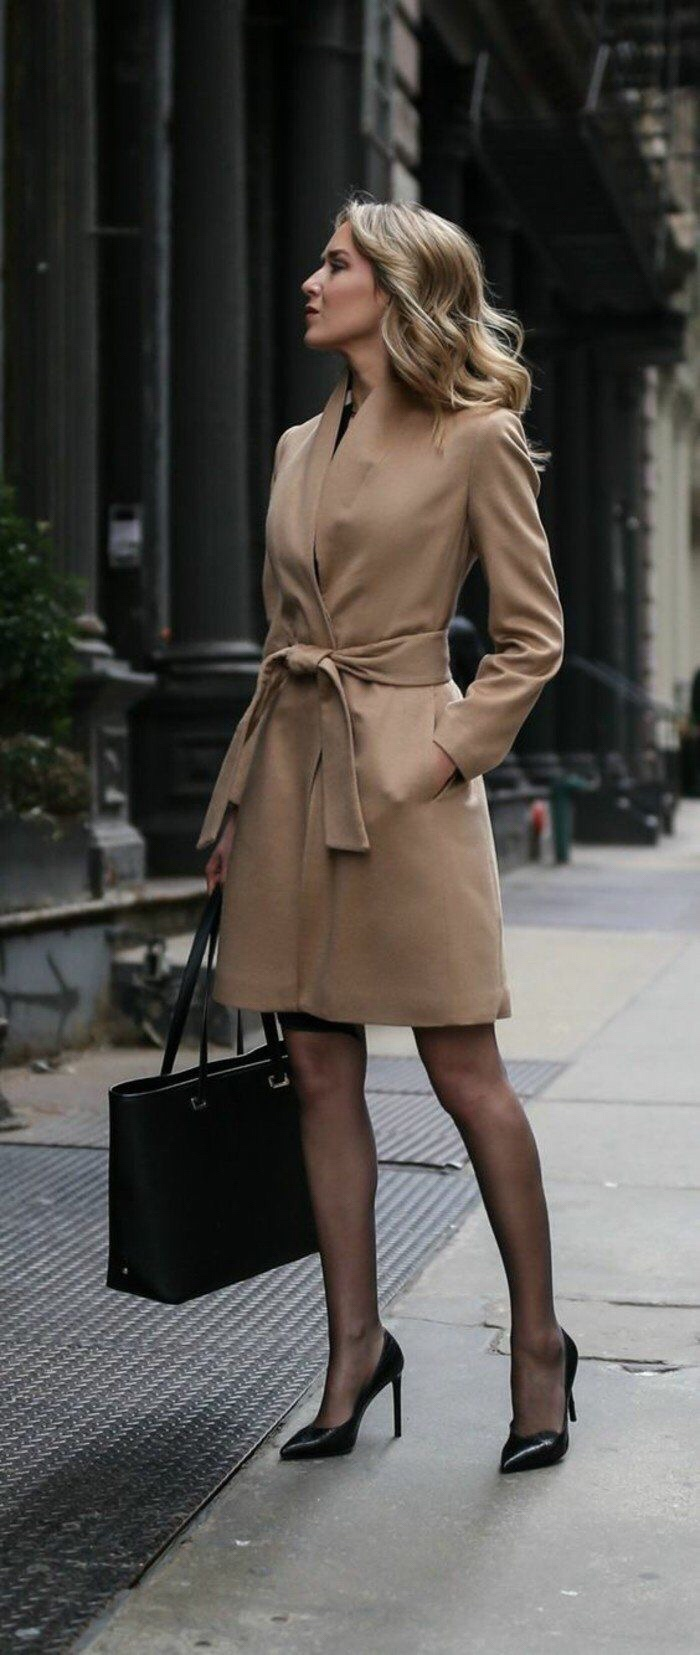 8 stylish ways to look taller